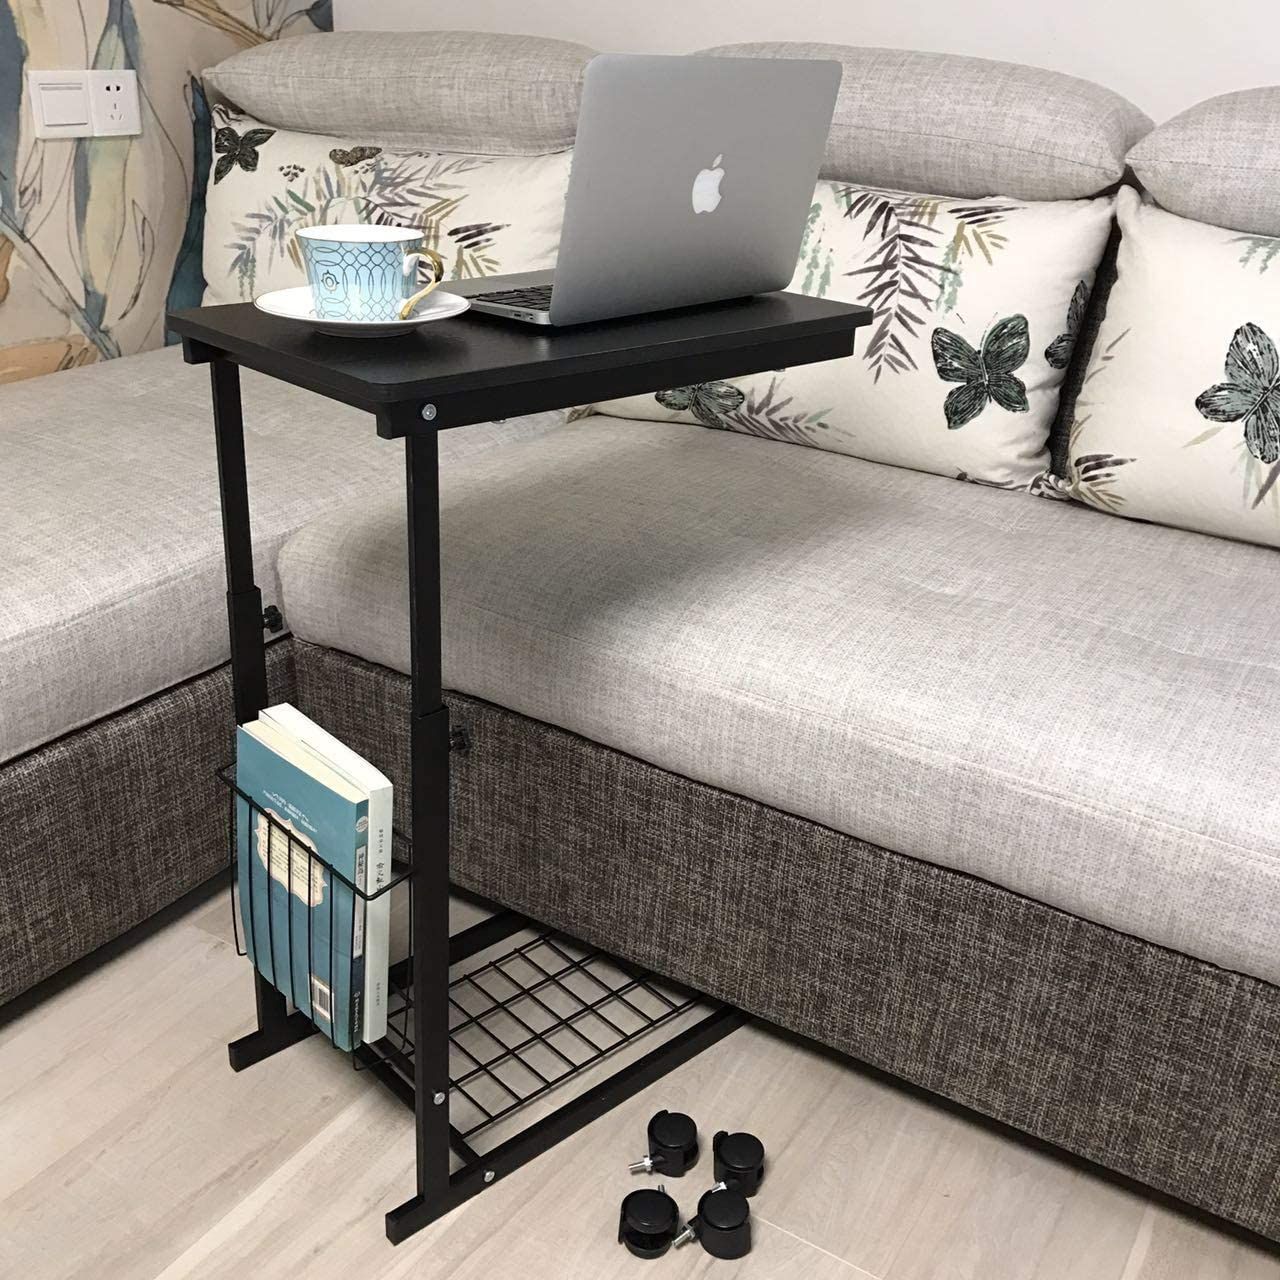 micoe Sofa Side Table with Wheels Couch TableThat Slide Under with Storage Shelves C Style Height Adjustable for Home/Room/Office(Black): Kitchen & Dining